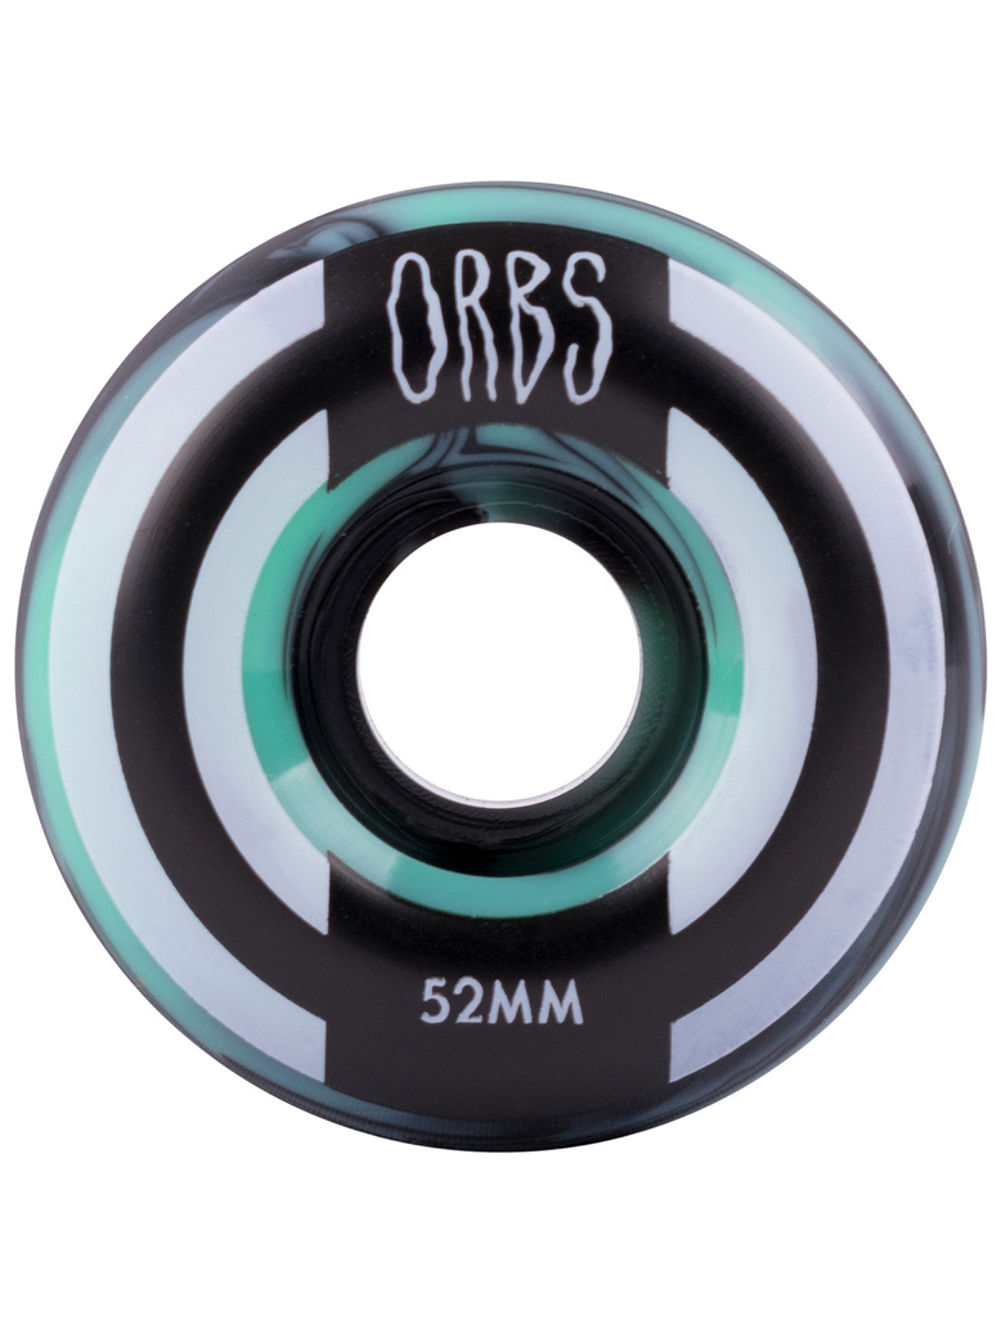 Apparitions 52mm Wheels